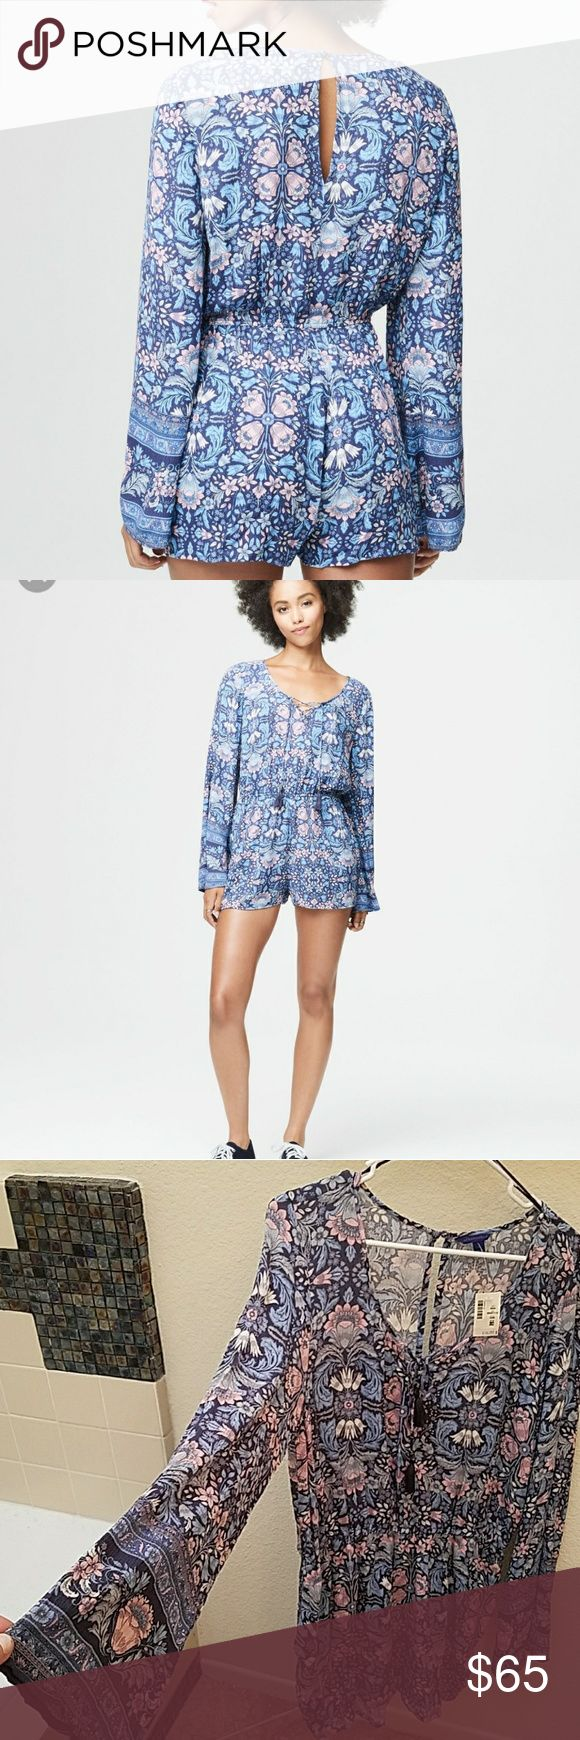 Aeropostale Romper Shorts with Long Flare Sleeves Purchased for a gift but never gave.  Purchased for $49.50 plus tax, plush posh commission. Trying to make my money back here.  Thanks for understanding. Style 3305 sku 99497115. Aeropostale Other